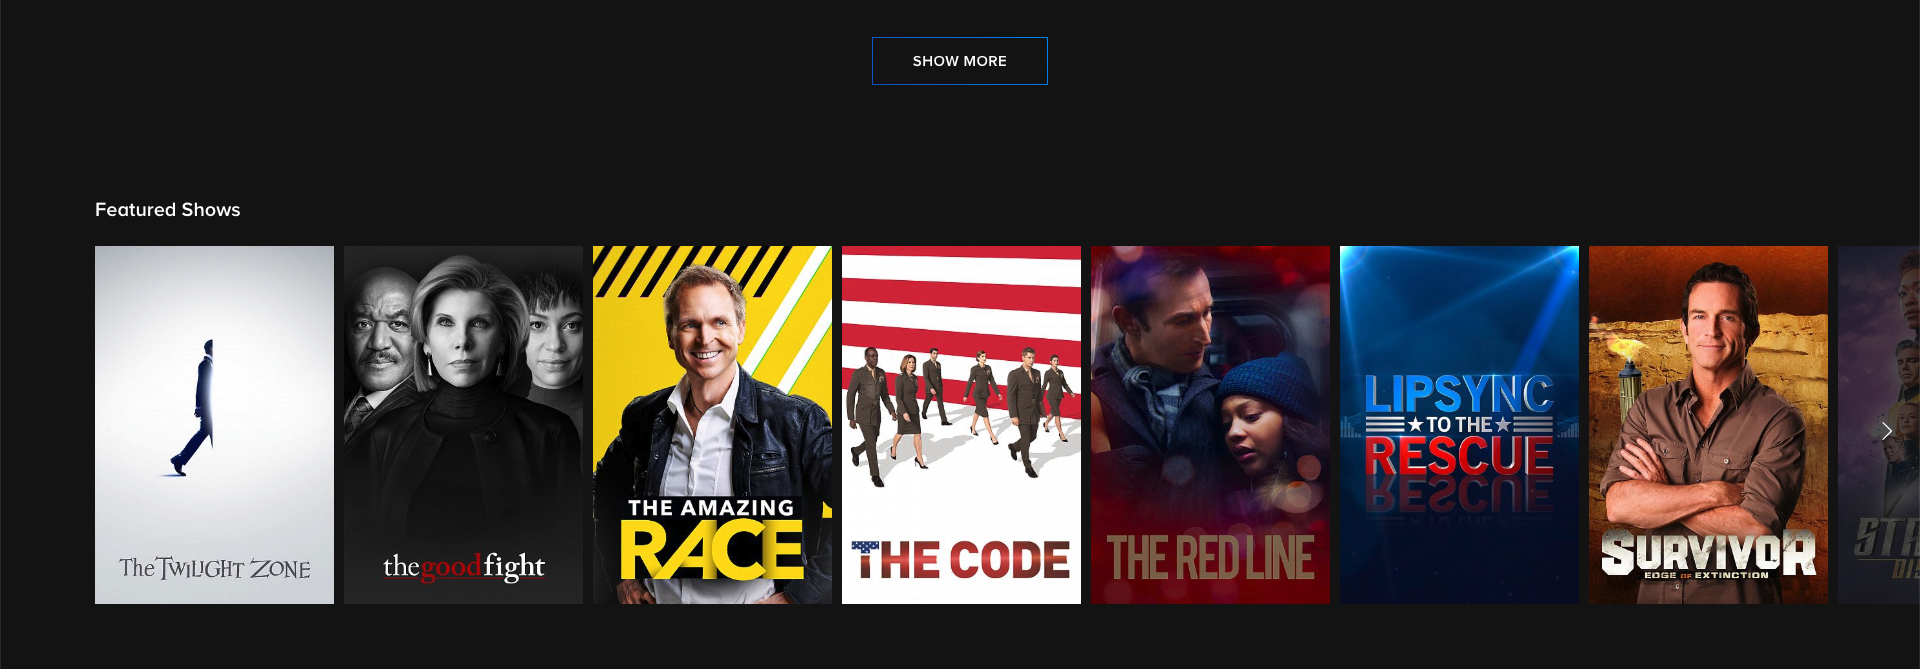 cbs all access on-demand library